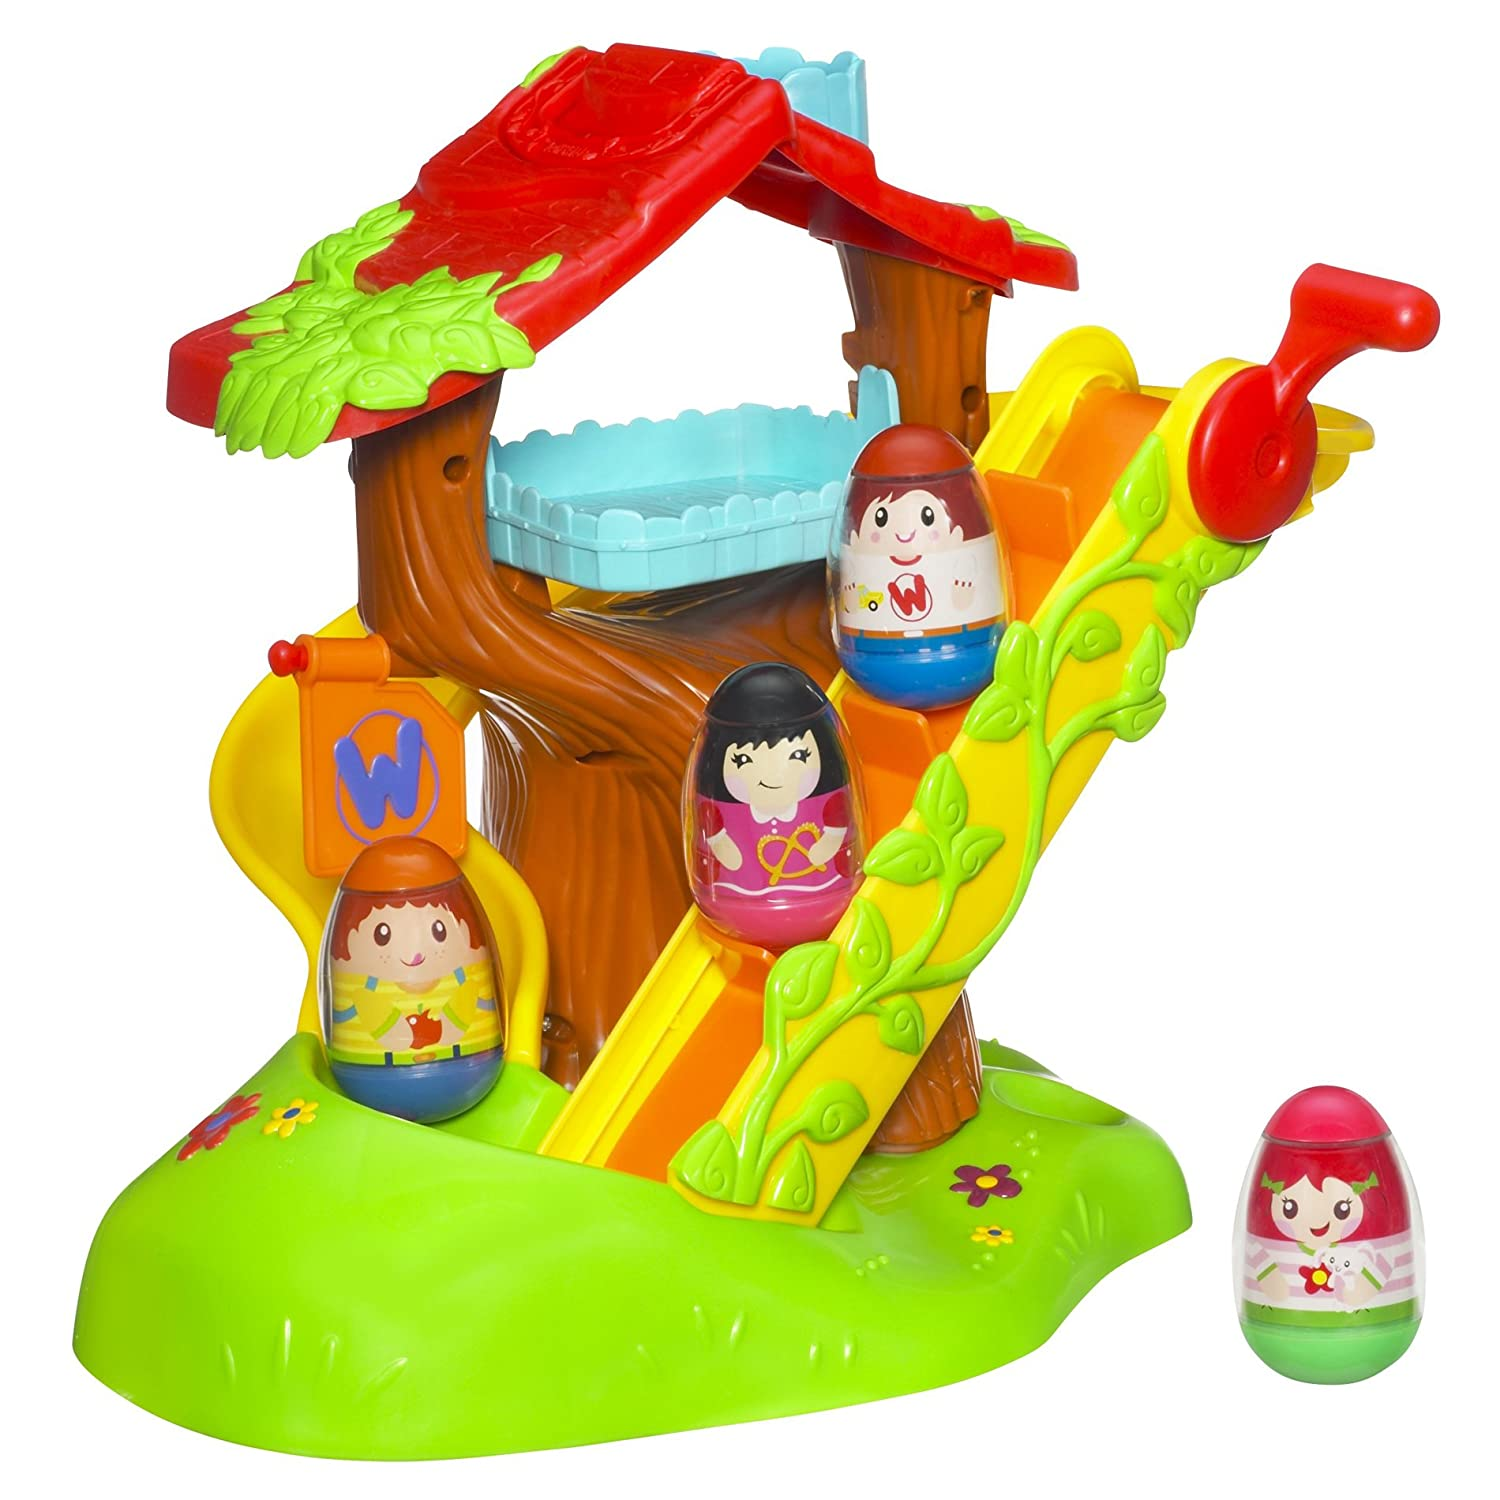 Superior Playskool Weebles Musical Treehouse Part - 4: Amazon.com